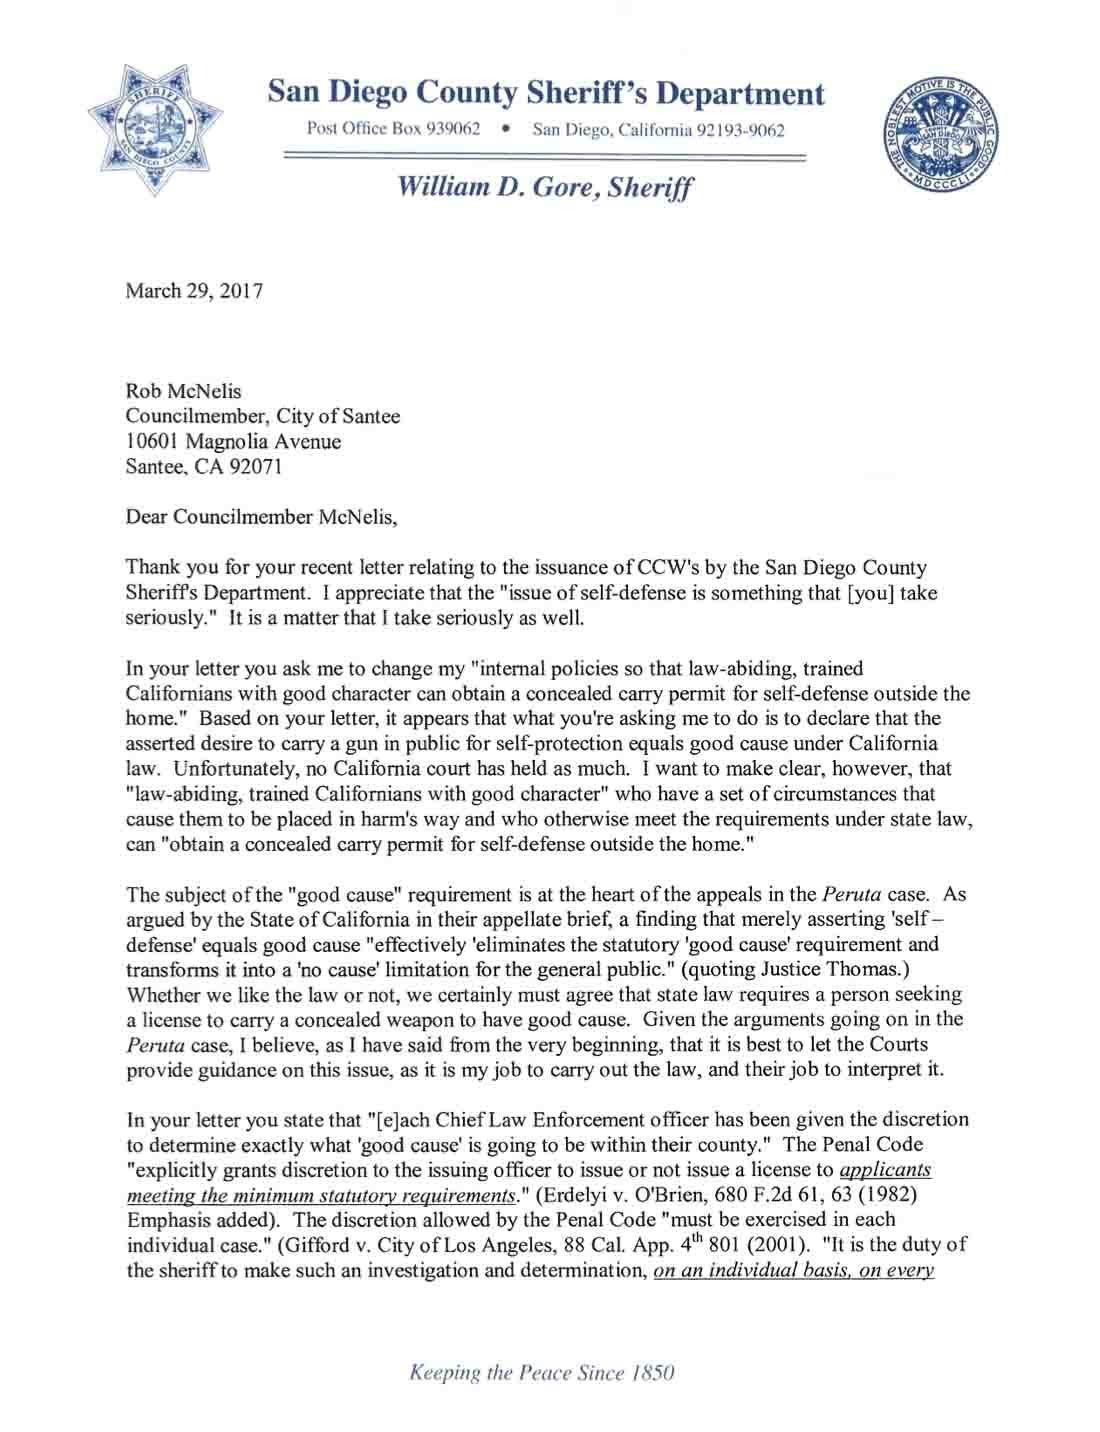 Letter to Sheriff Gore